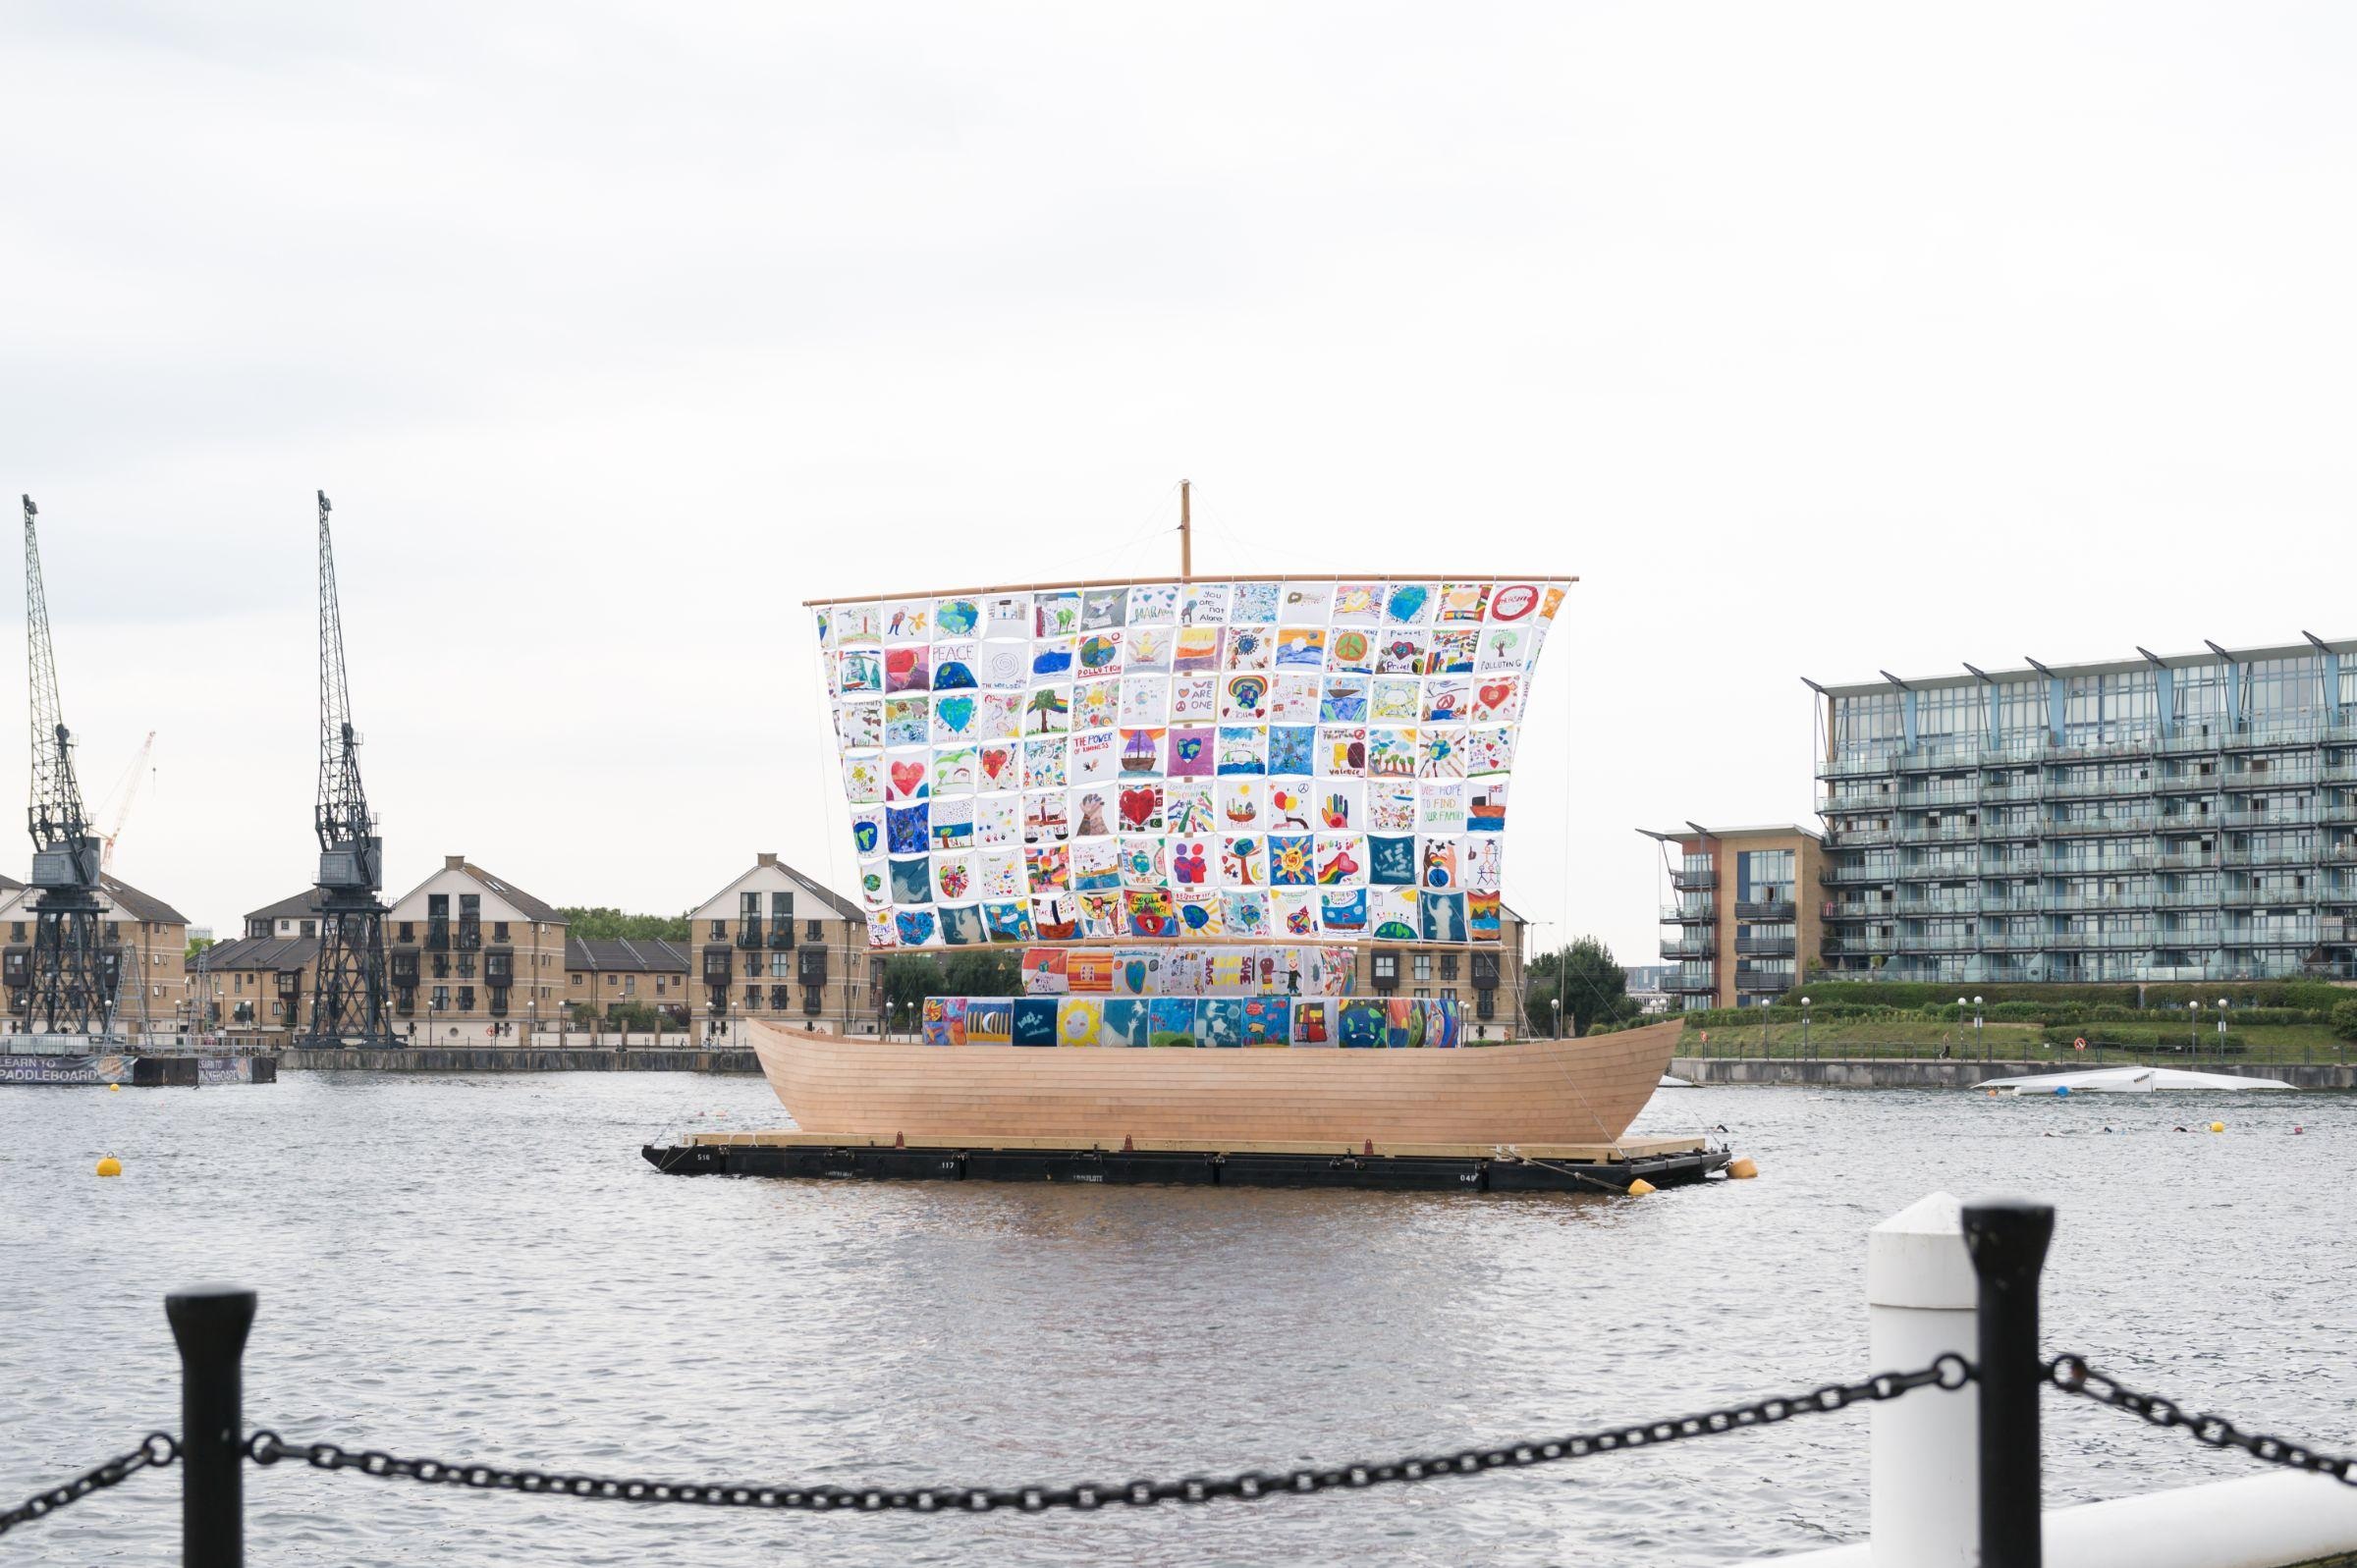 The Ship of Tolerance on the water at the Royal Docks